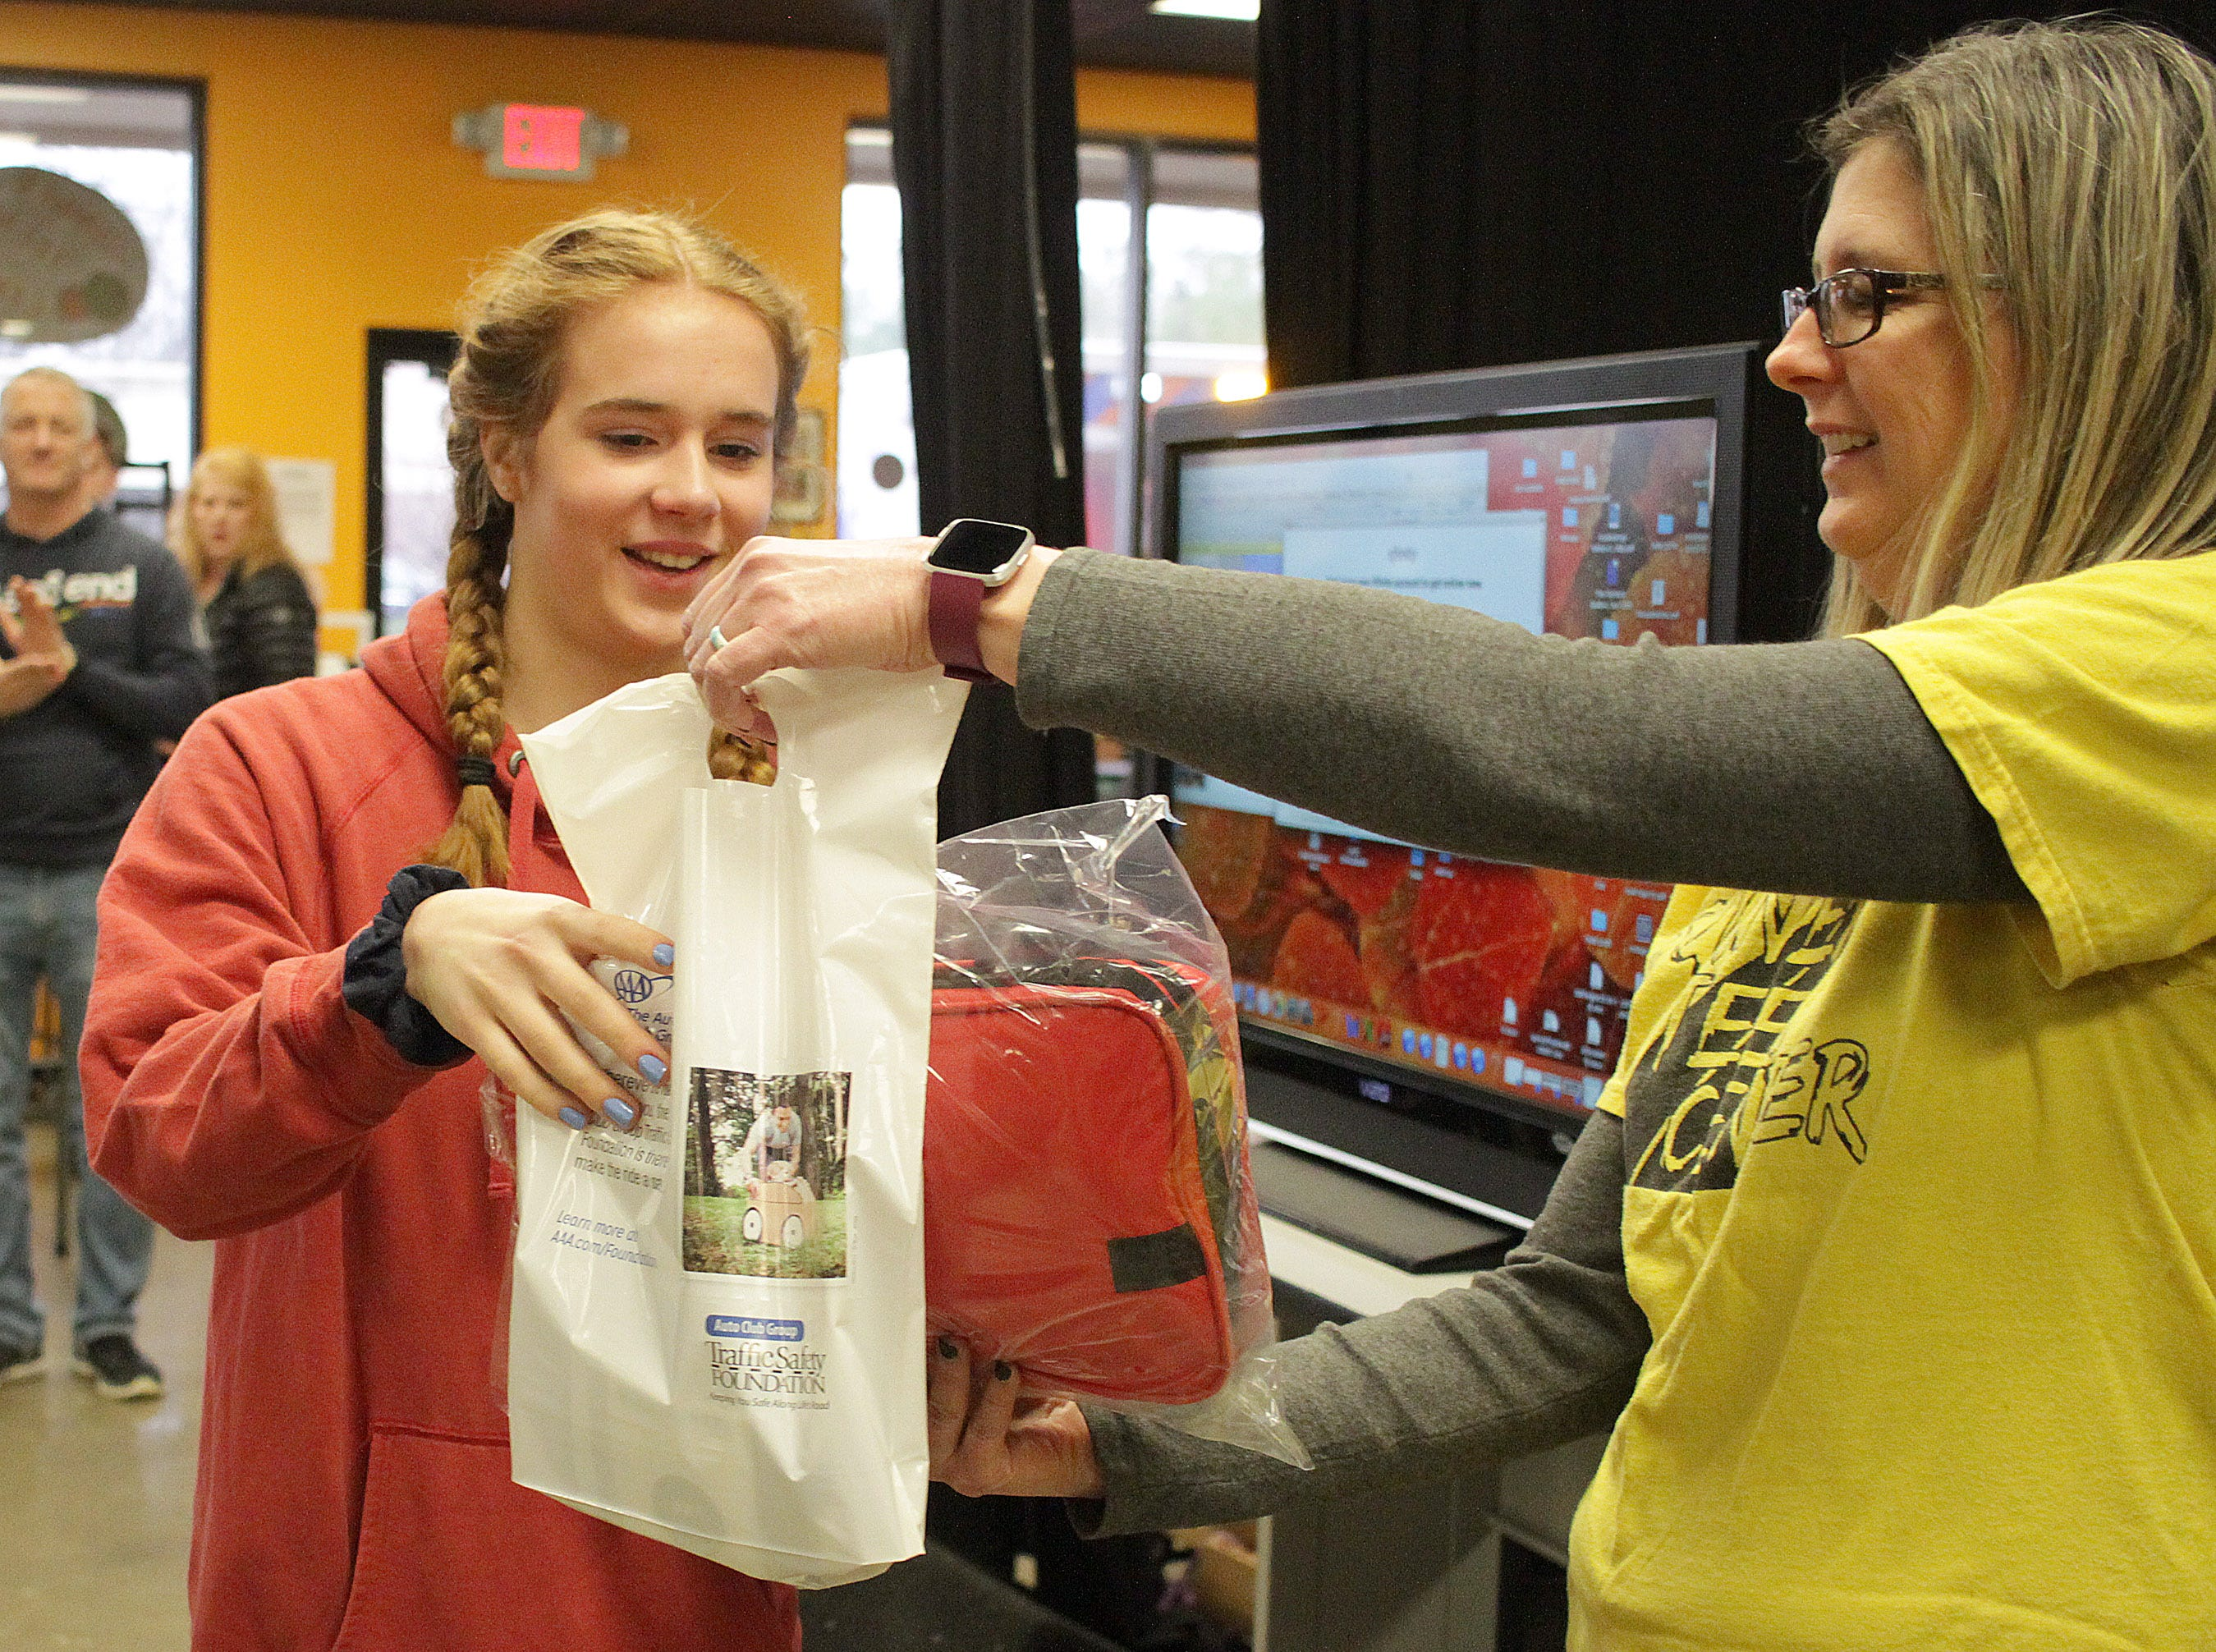 Kyra Siciliano wins a prize at Teen Driver Safety Day from Stacy Douglas (Program Director, Gallatin Teen Center) on Saturday, March 2, 2019.